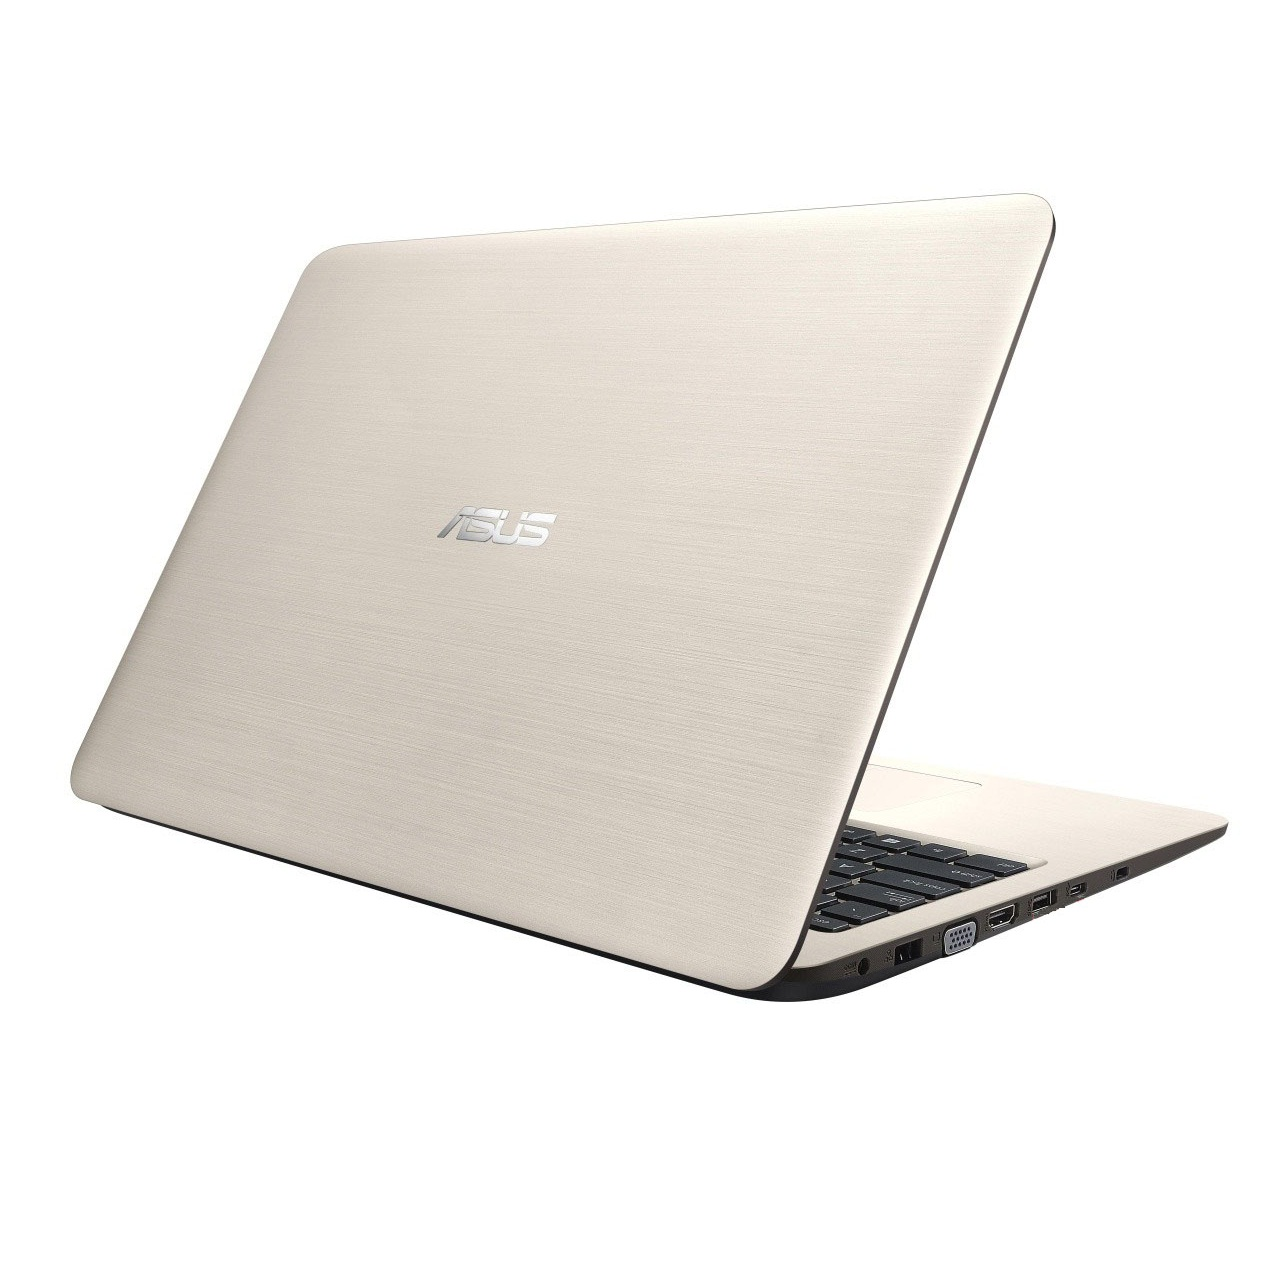 Laptop ASUS A556UR-DM090T Core i7-6500U Ram 4GB HDD 1000GB GT930 2G Windown 10